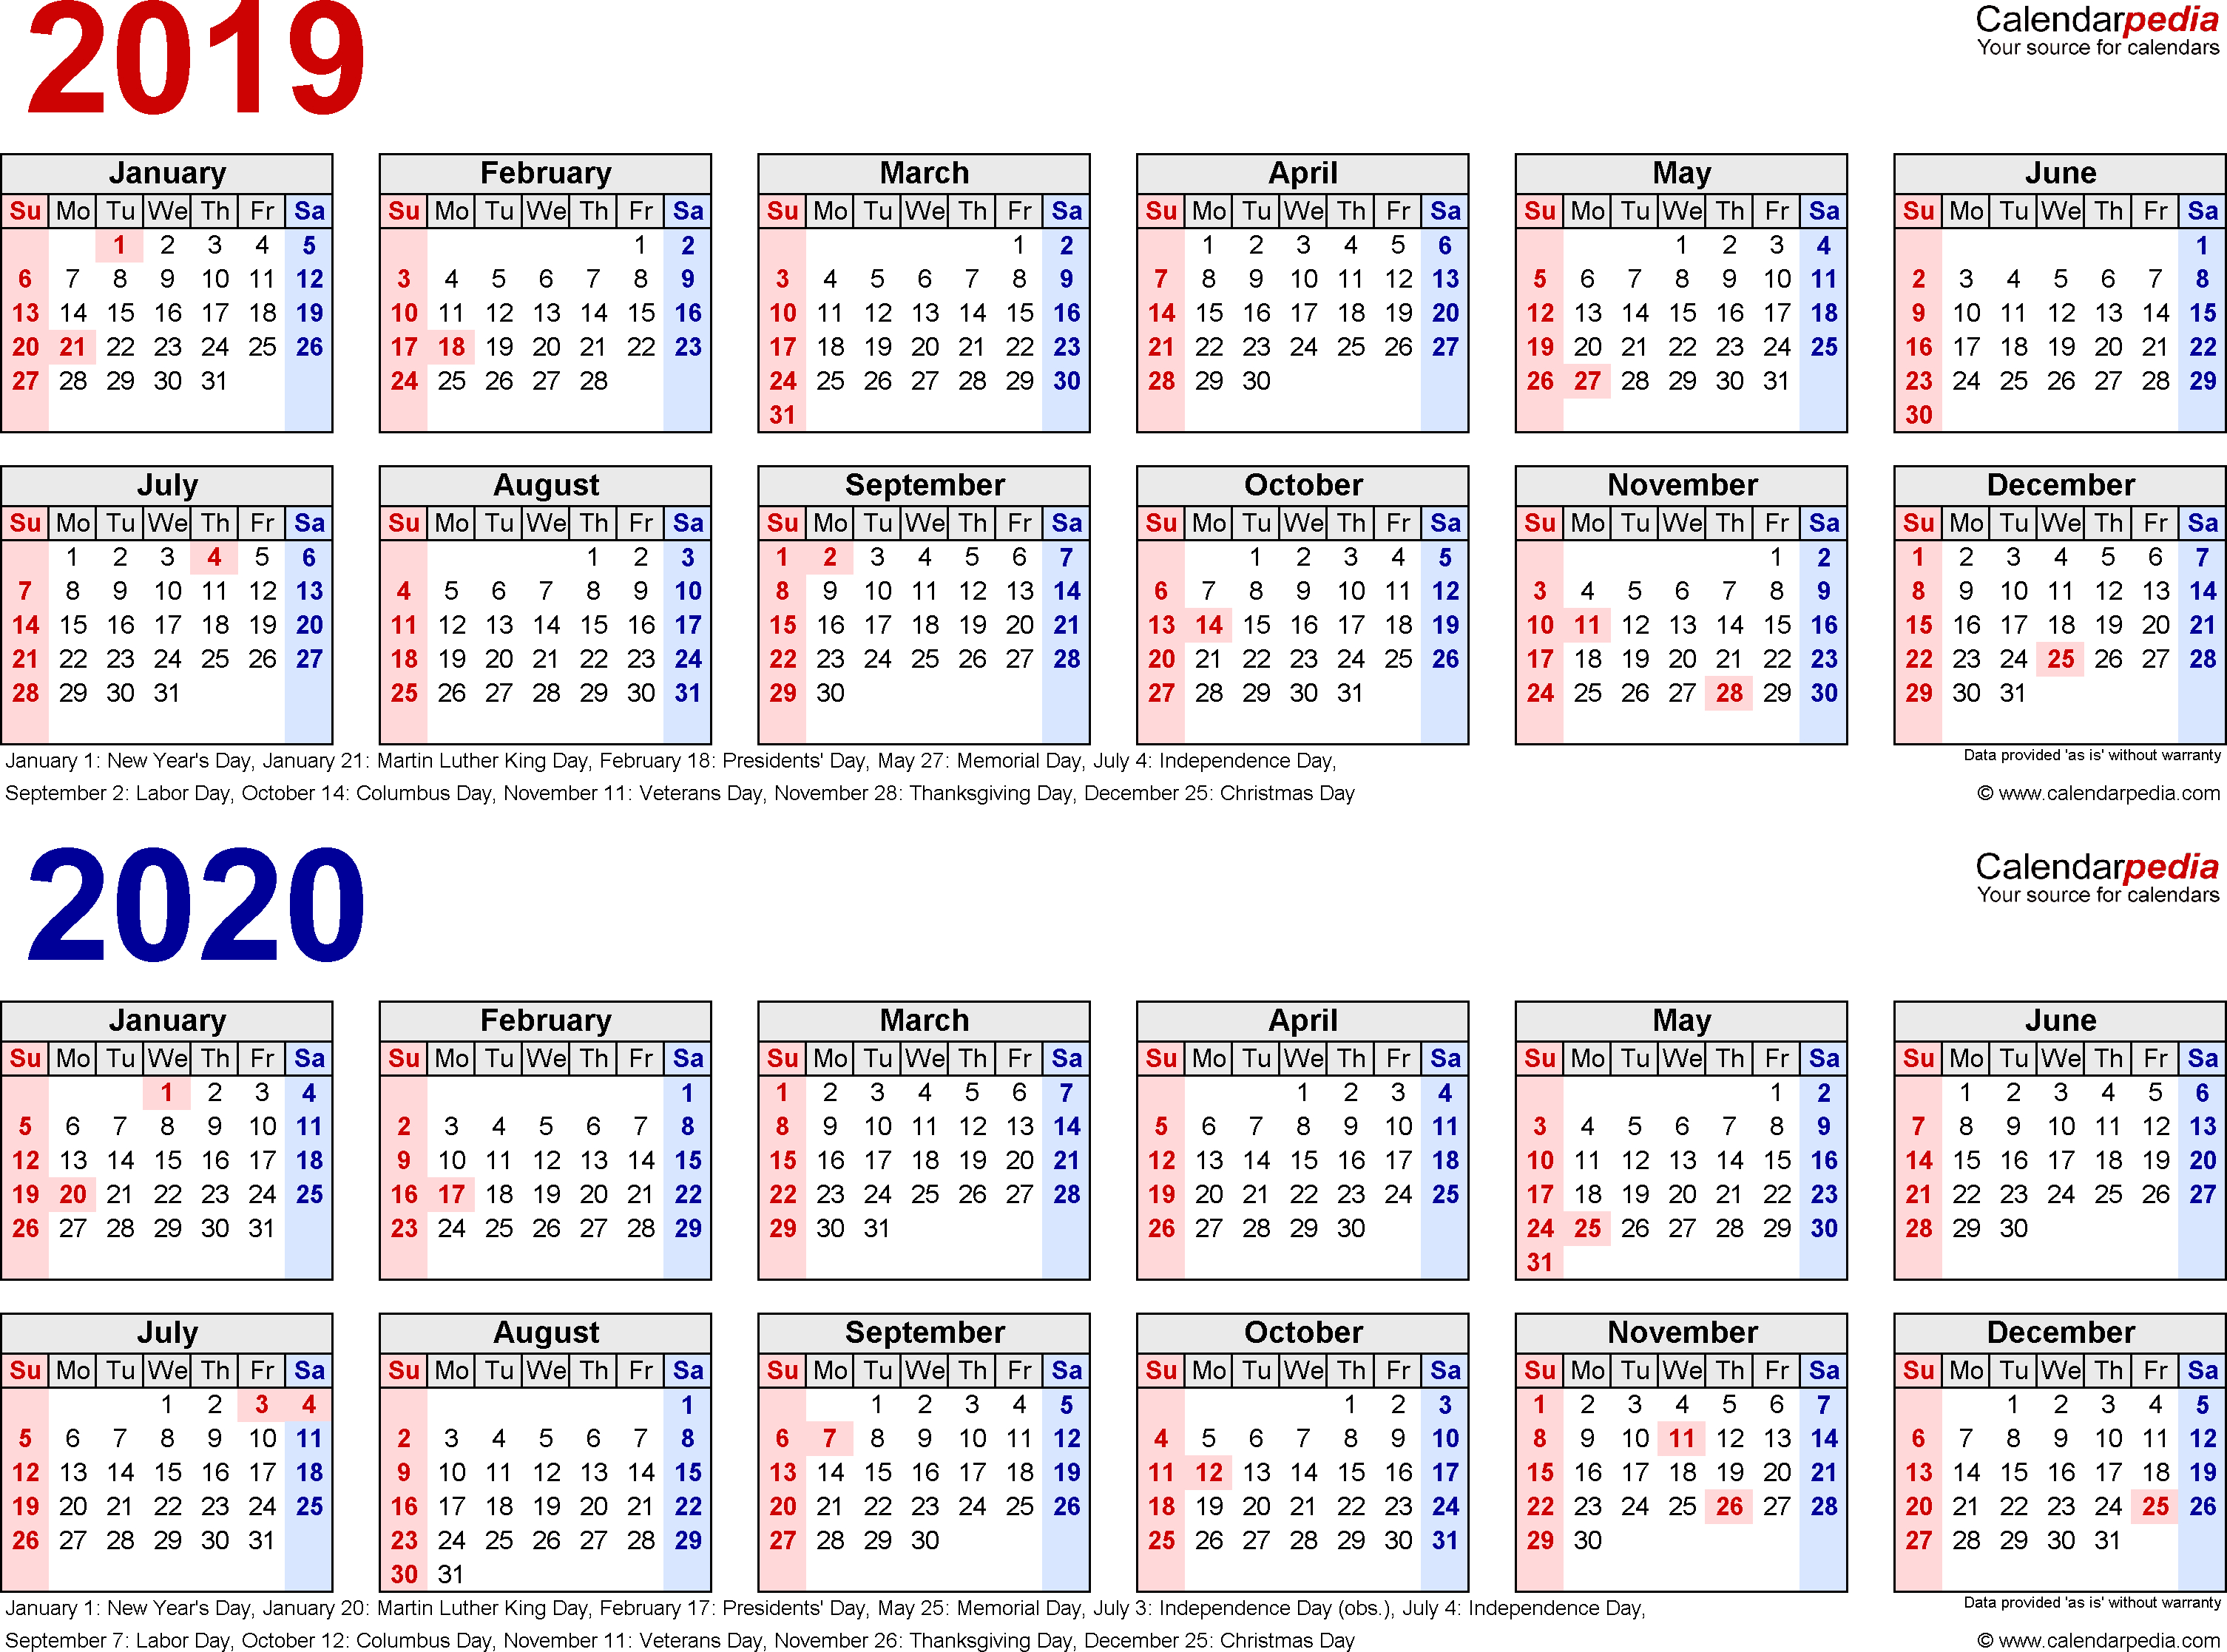 2019-2020 Calendar - Free Printable Two-Year Word Calendars inside Monday Through Friday Calendar 2019 2020